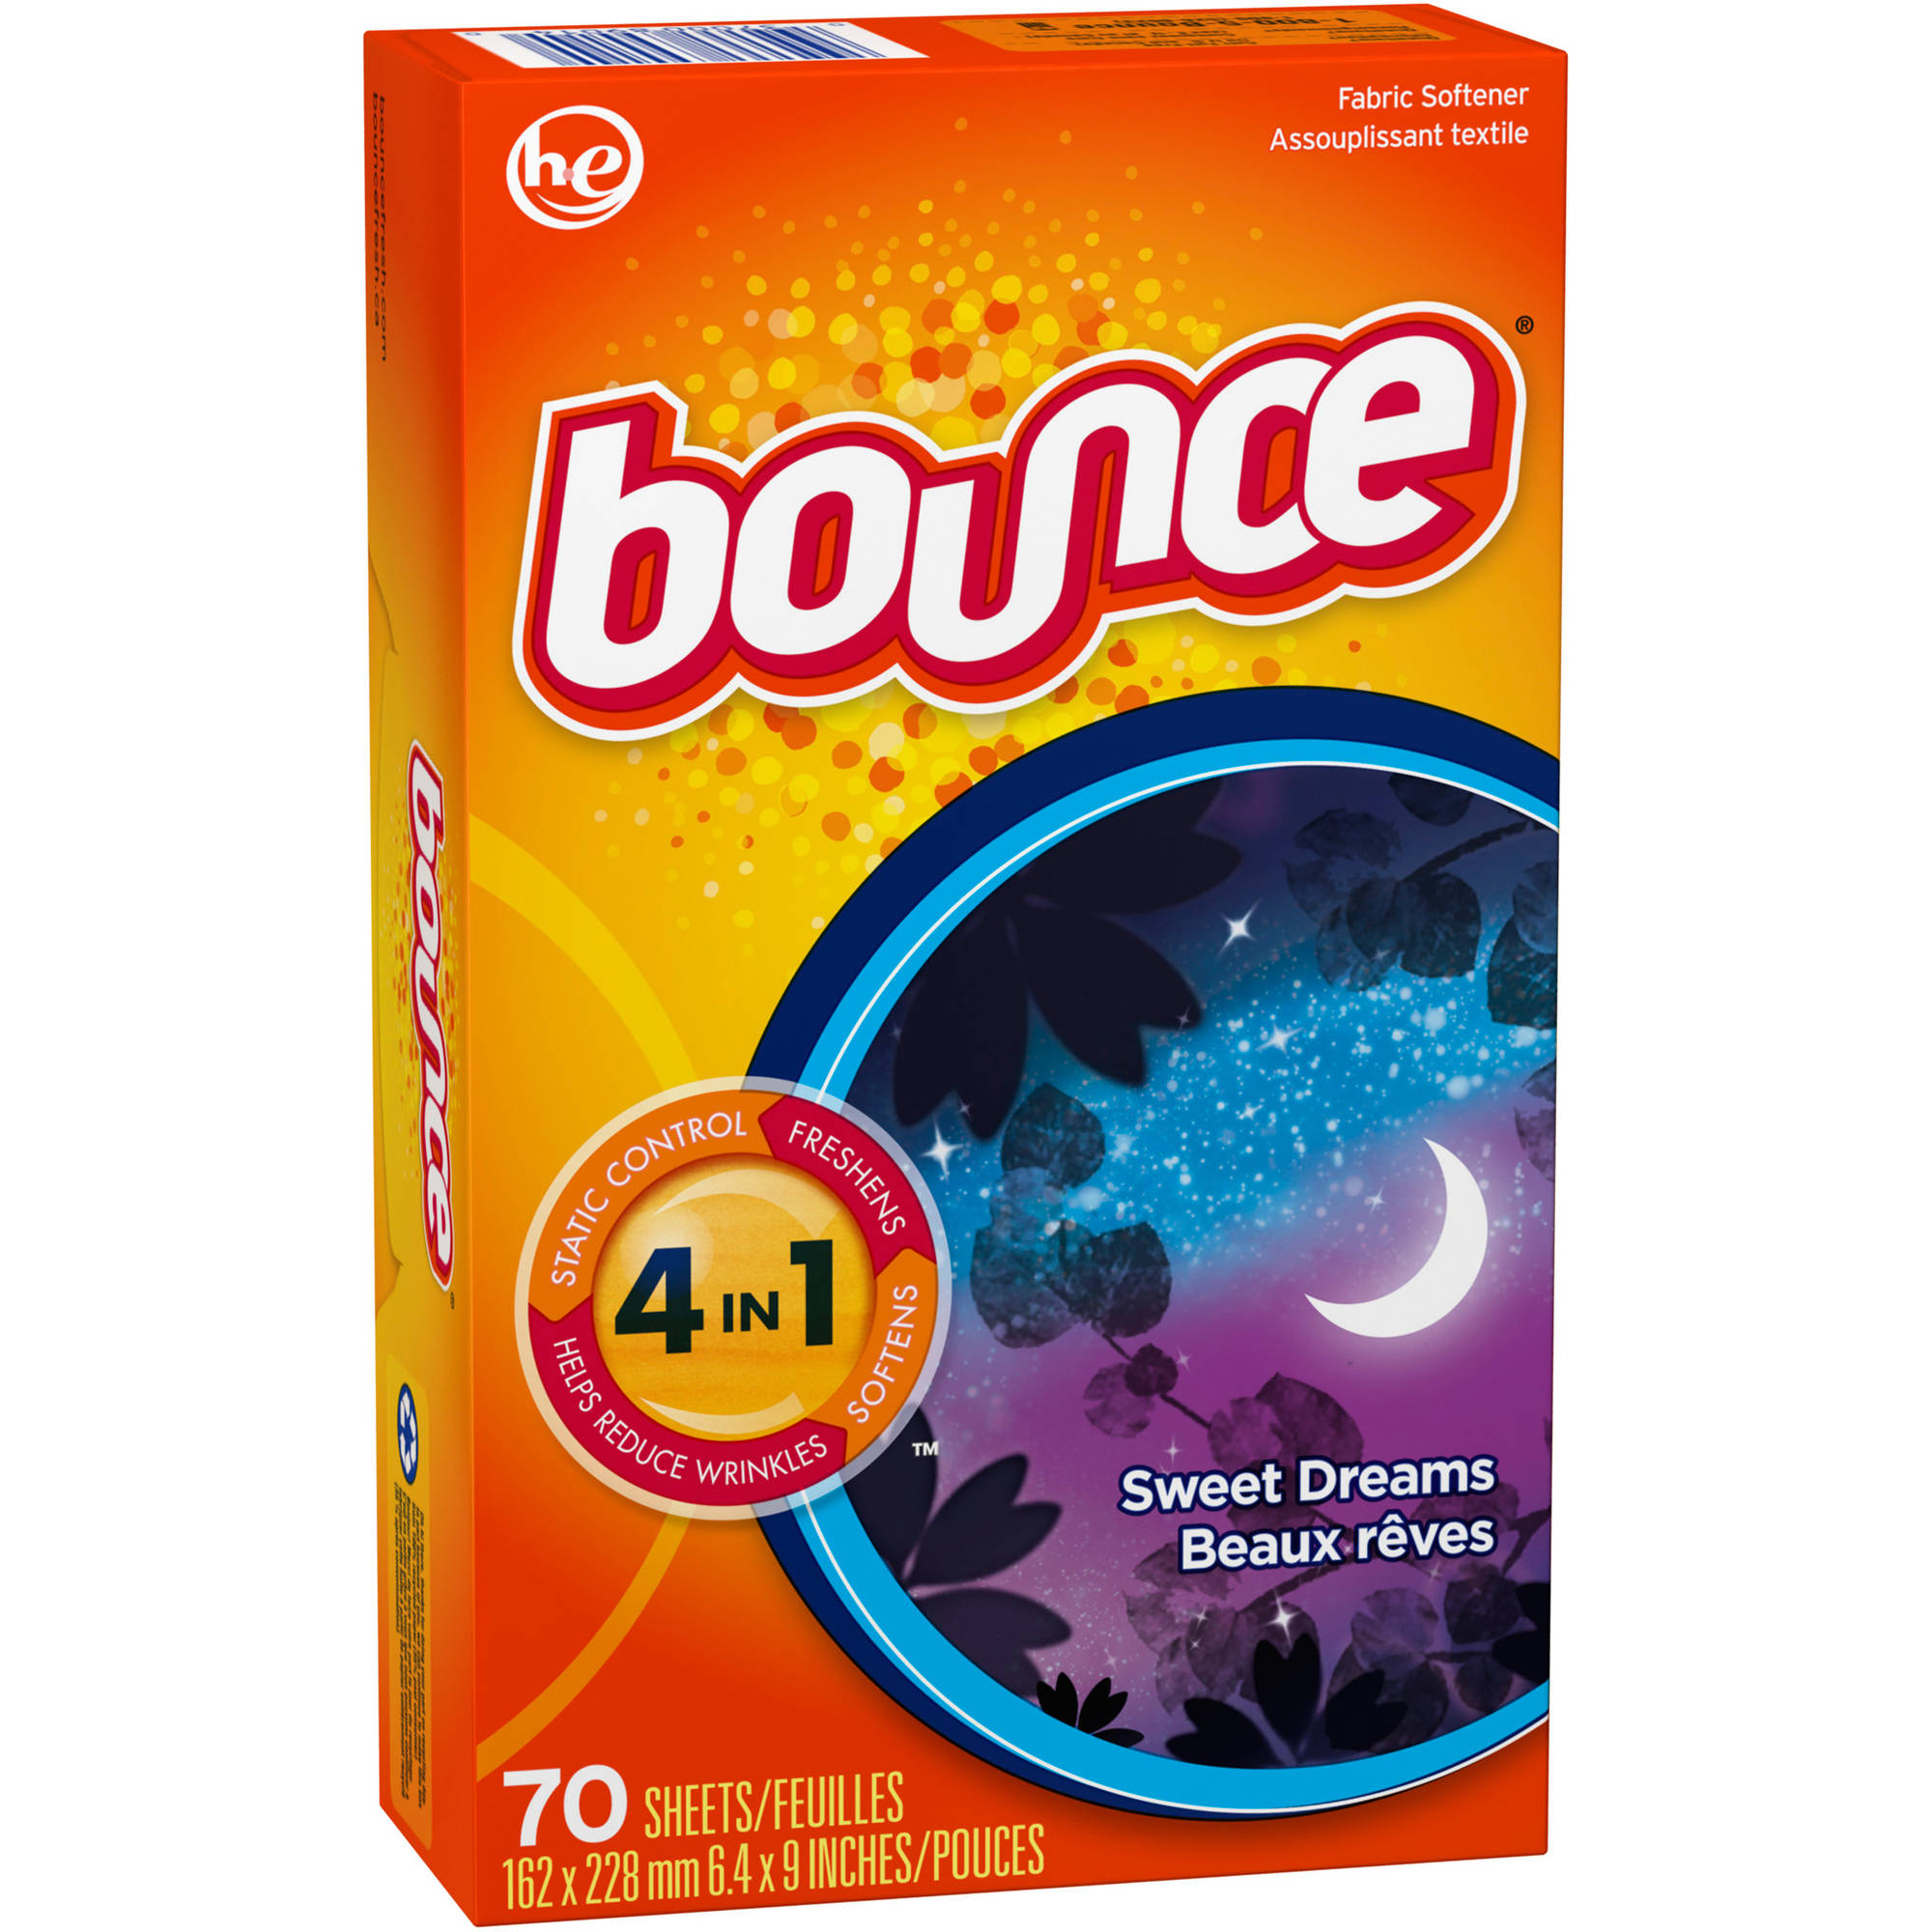 Bounce Sweet Dreams Fabric Softener Dryer Sheets, 70 sheets